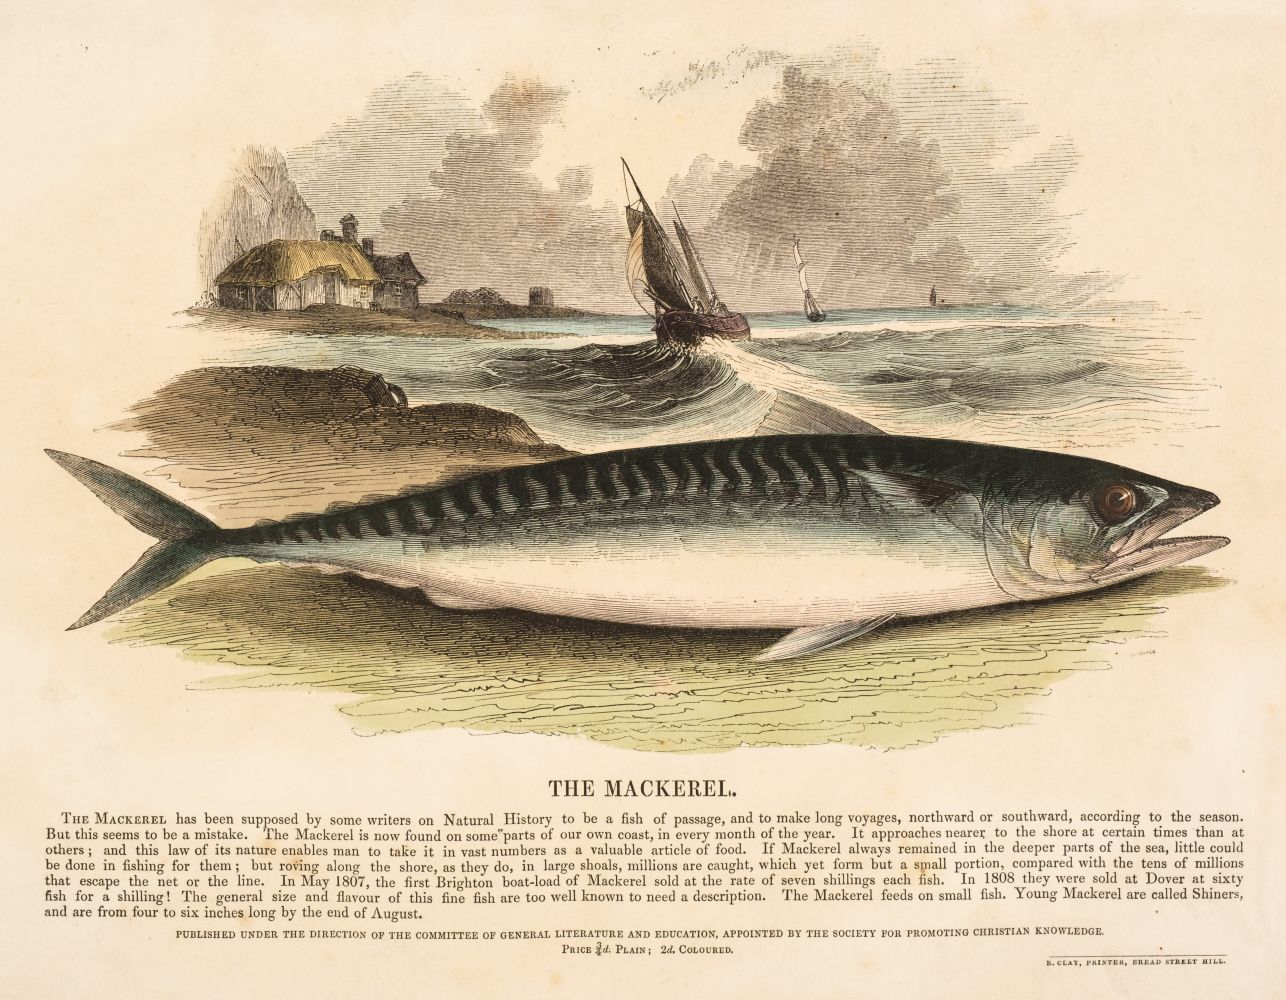 S. P. C. K. An album of 40 'Plates Illustrative of Natural History', 1845 - 50